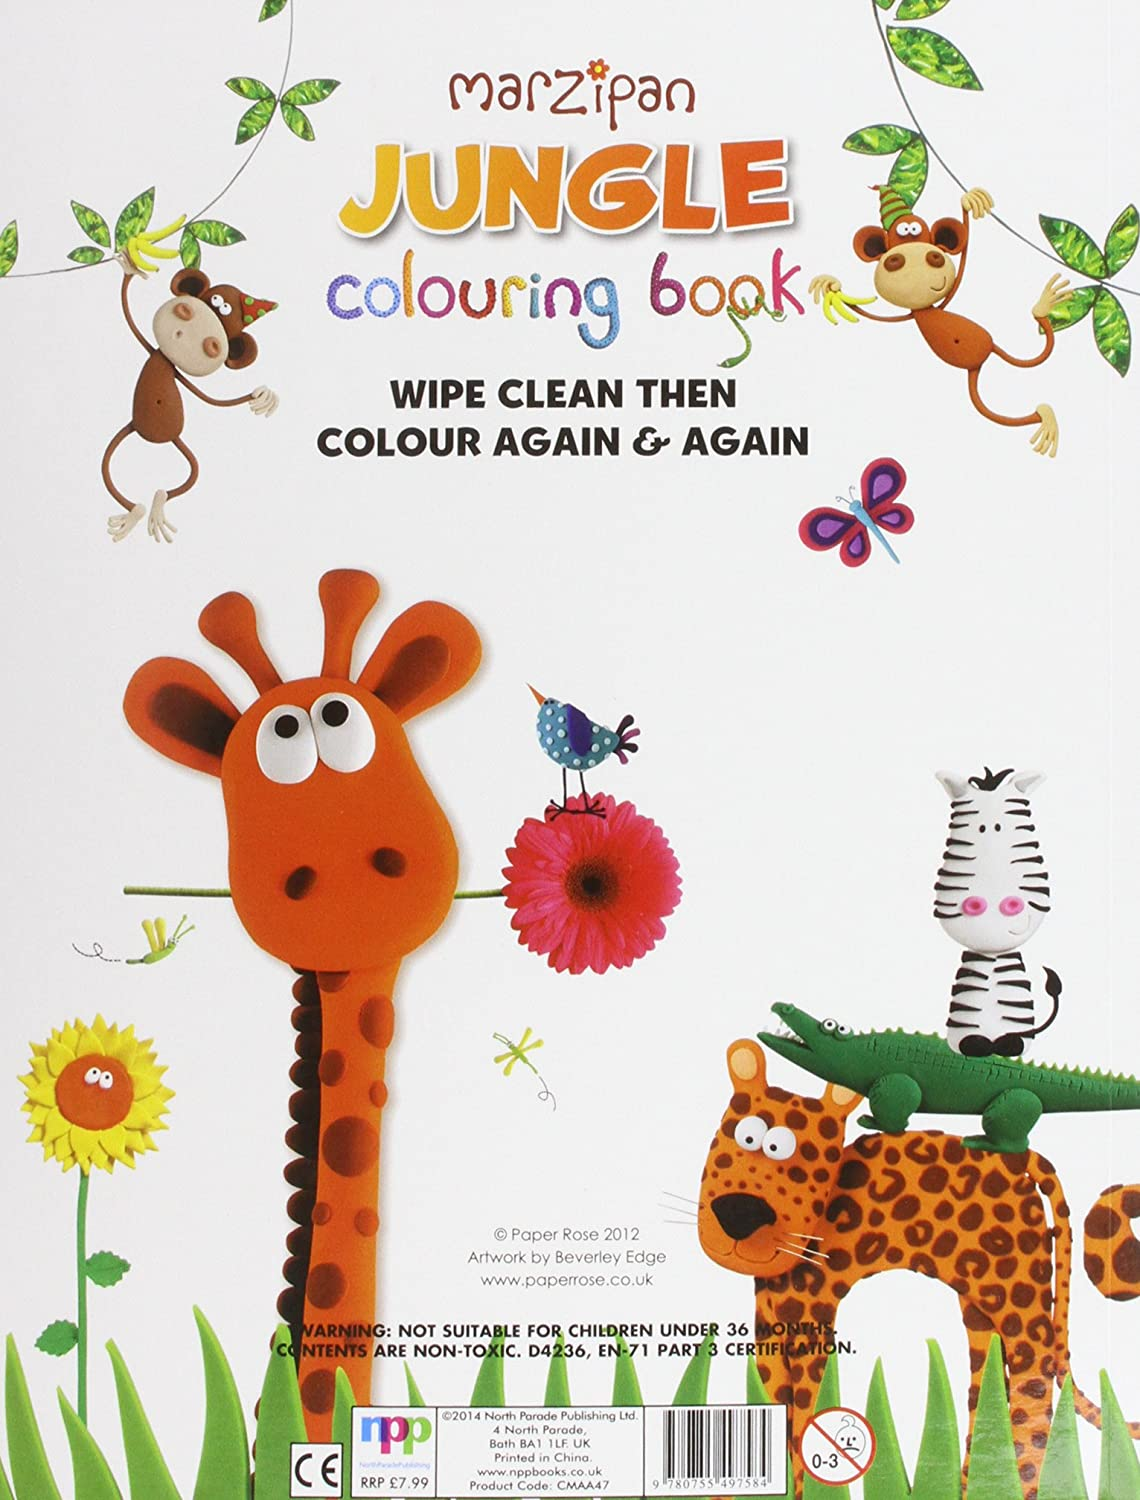 Co coloring book printer paper - Co Coloring Book Rose Jungle Wipe Clean Colouring Book And Crayon Set With Crayons Paper